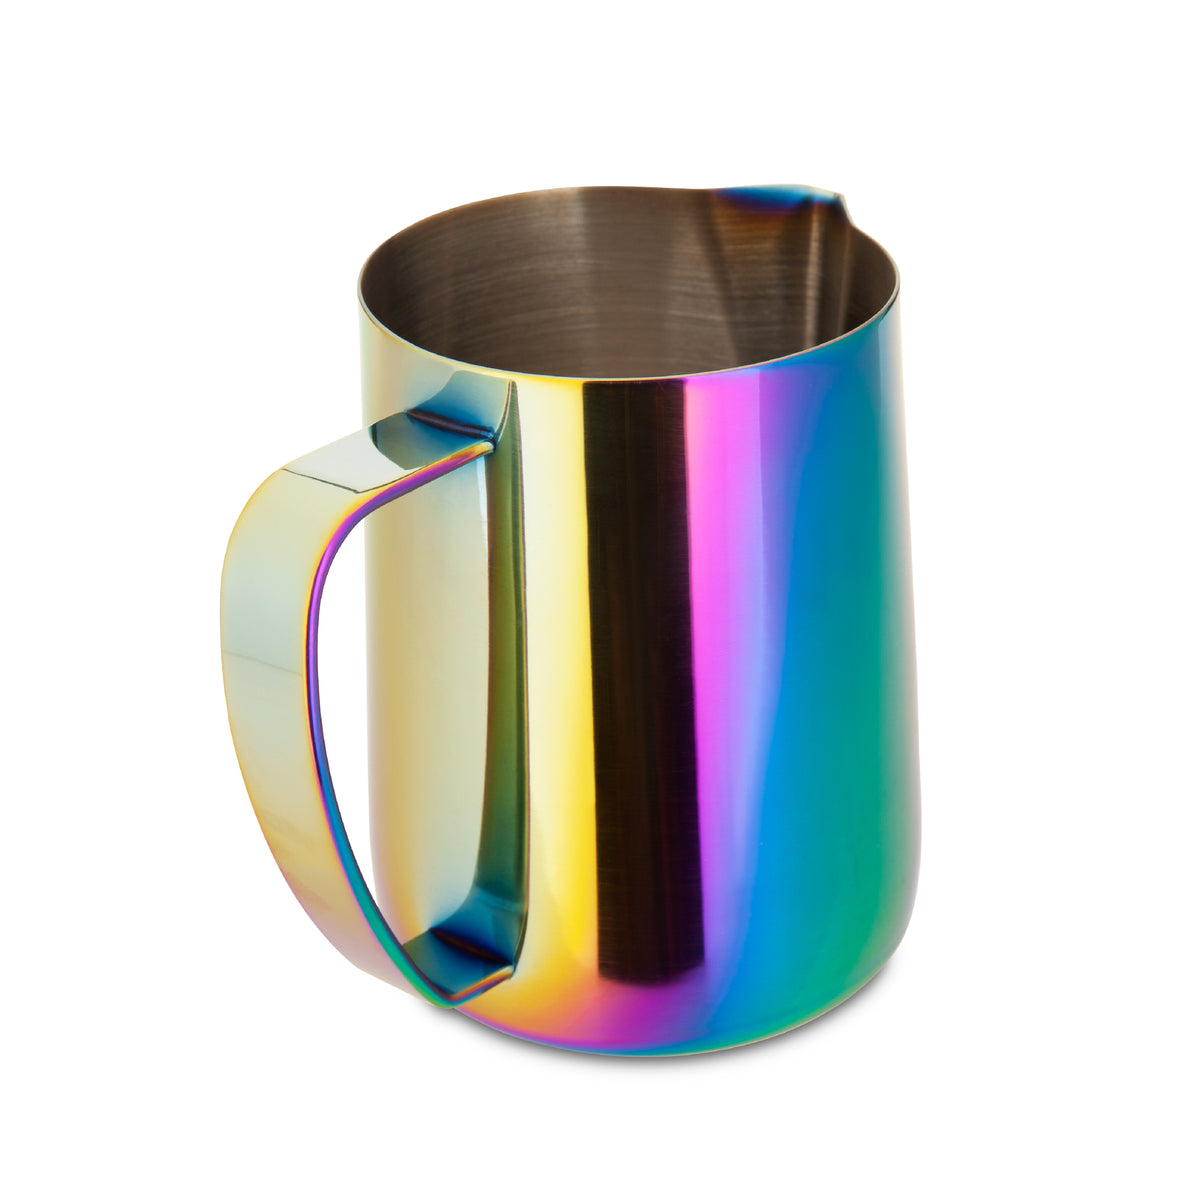 EspressoWorks Stainless Steel Milk Frothing Jug - Rainbow (600ml)